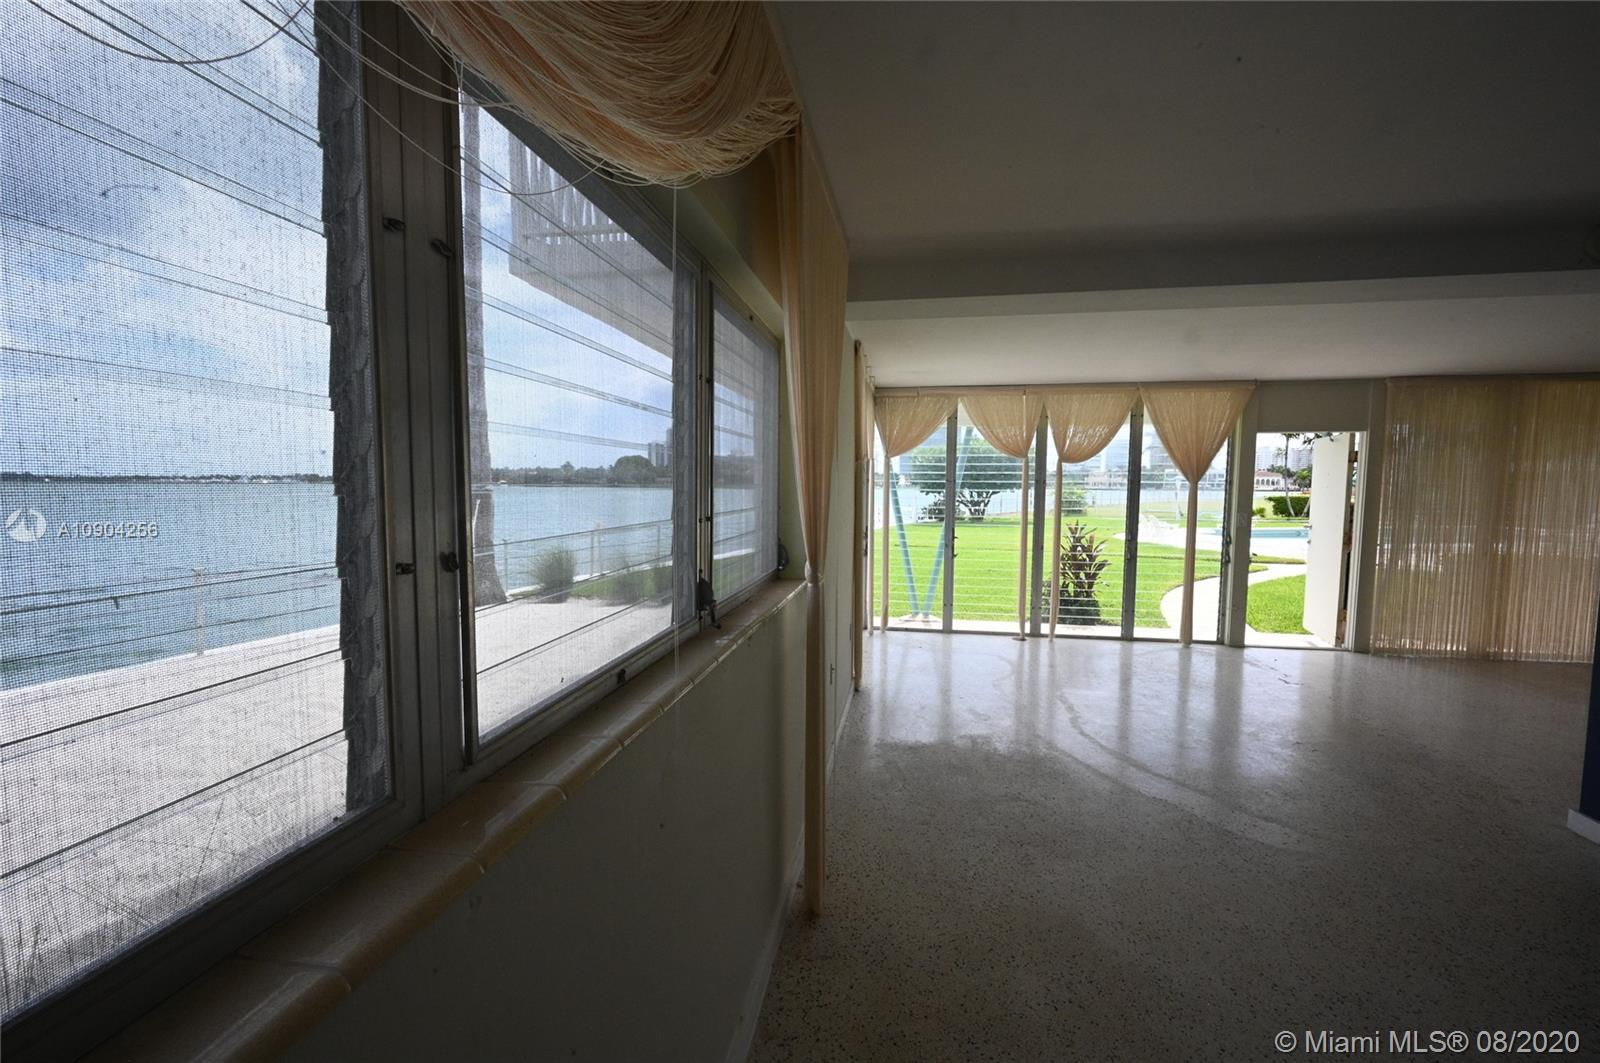 Great Mid-Century master piece building. Gran floor corner unit,25 feet facing the wide Bay, terrazzo floor, central A/C and floor-to-ceiling windows. Enjoy a heated swimming pool with, dock, white sandy beach, shuffleboard and kayak storage and barbeque areaWaking distance to fine dinning, beaches, Bal Harbor Shops, Houses of Worship and Rated school K-8Yes,this is Dexter building, excellent life style. Call or text listing agent for showing instructions.